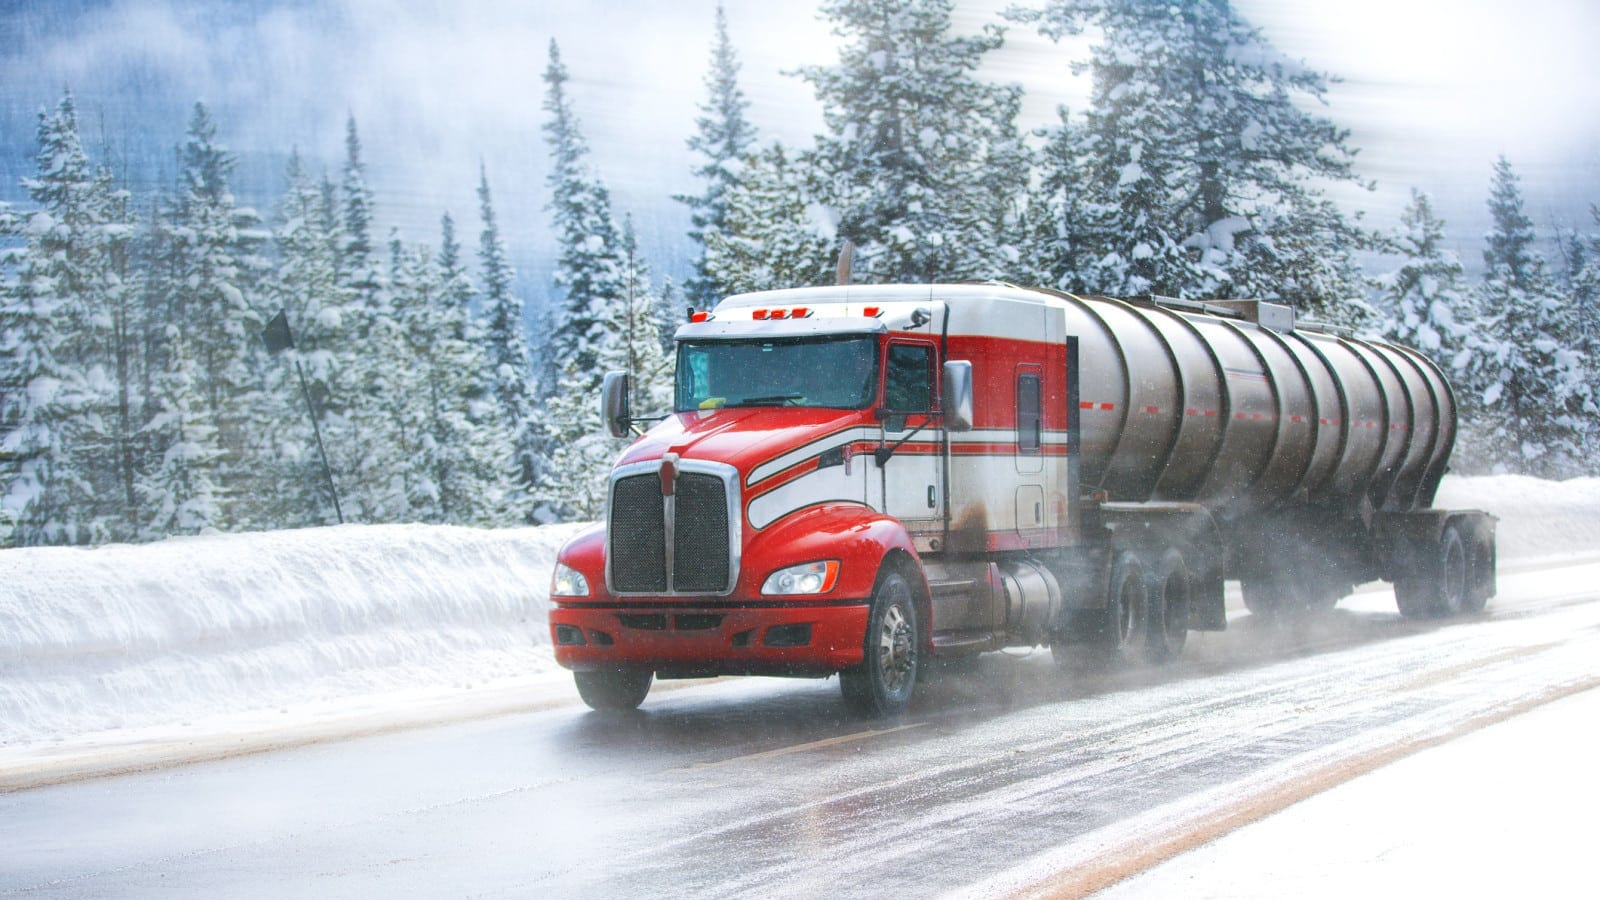 18-wheeler Truck Driving On An Icy Road Stock Photo